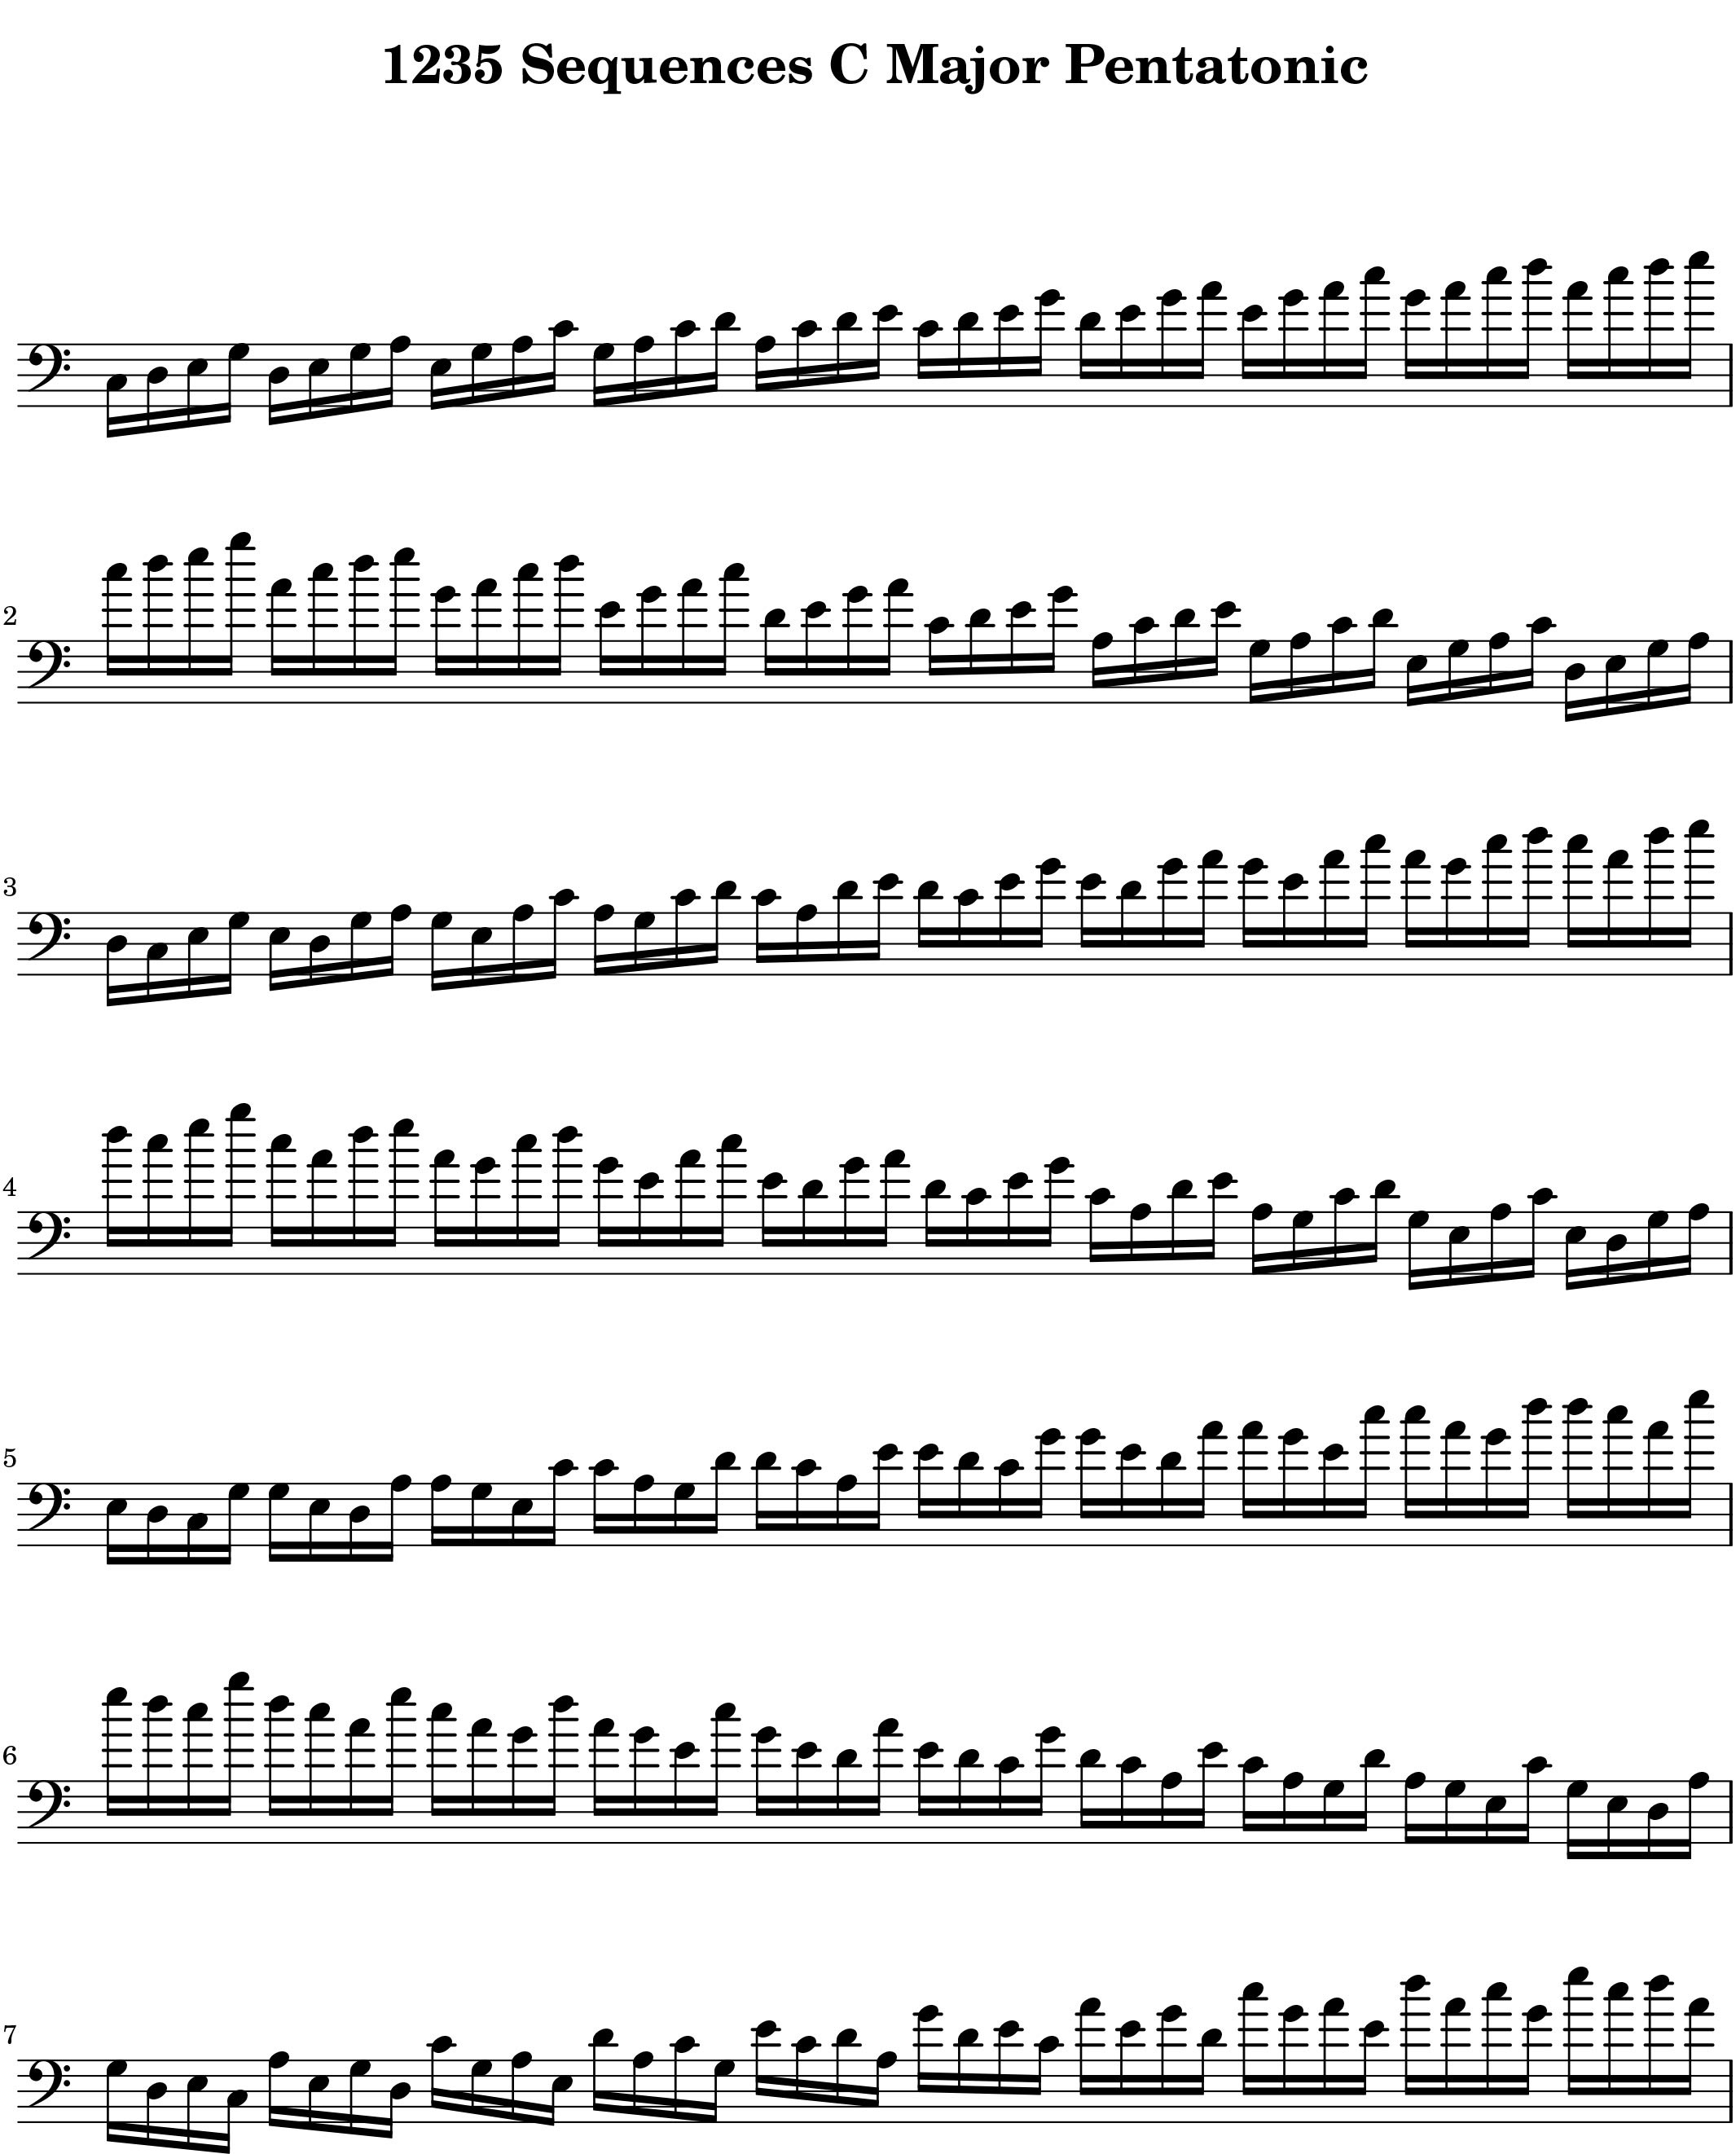 1,2,3,5_Modal_Sequence_for__Pentatonic Scale Lexicon V1 Bass Clef by Bruce Arnold for Muse Eek Publishing